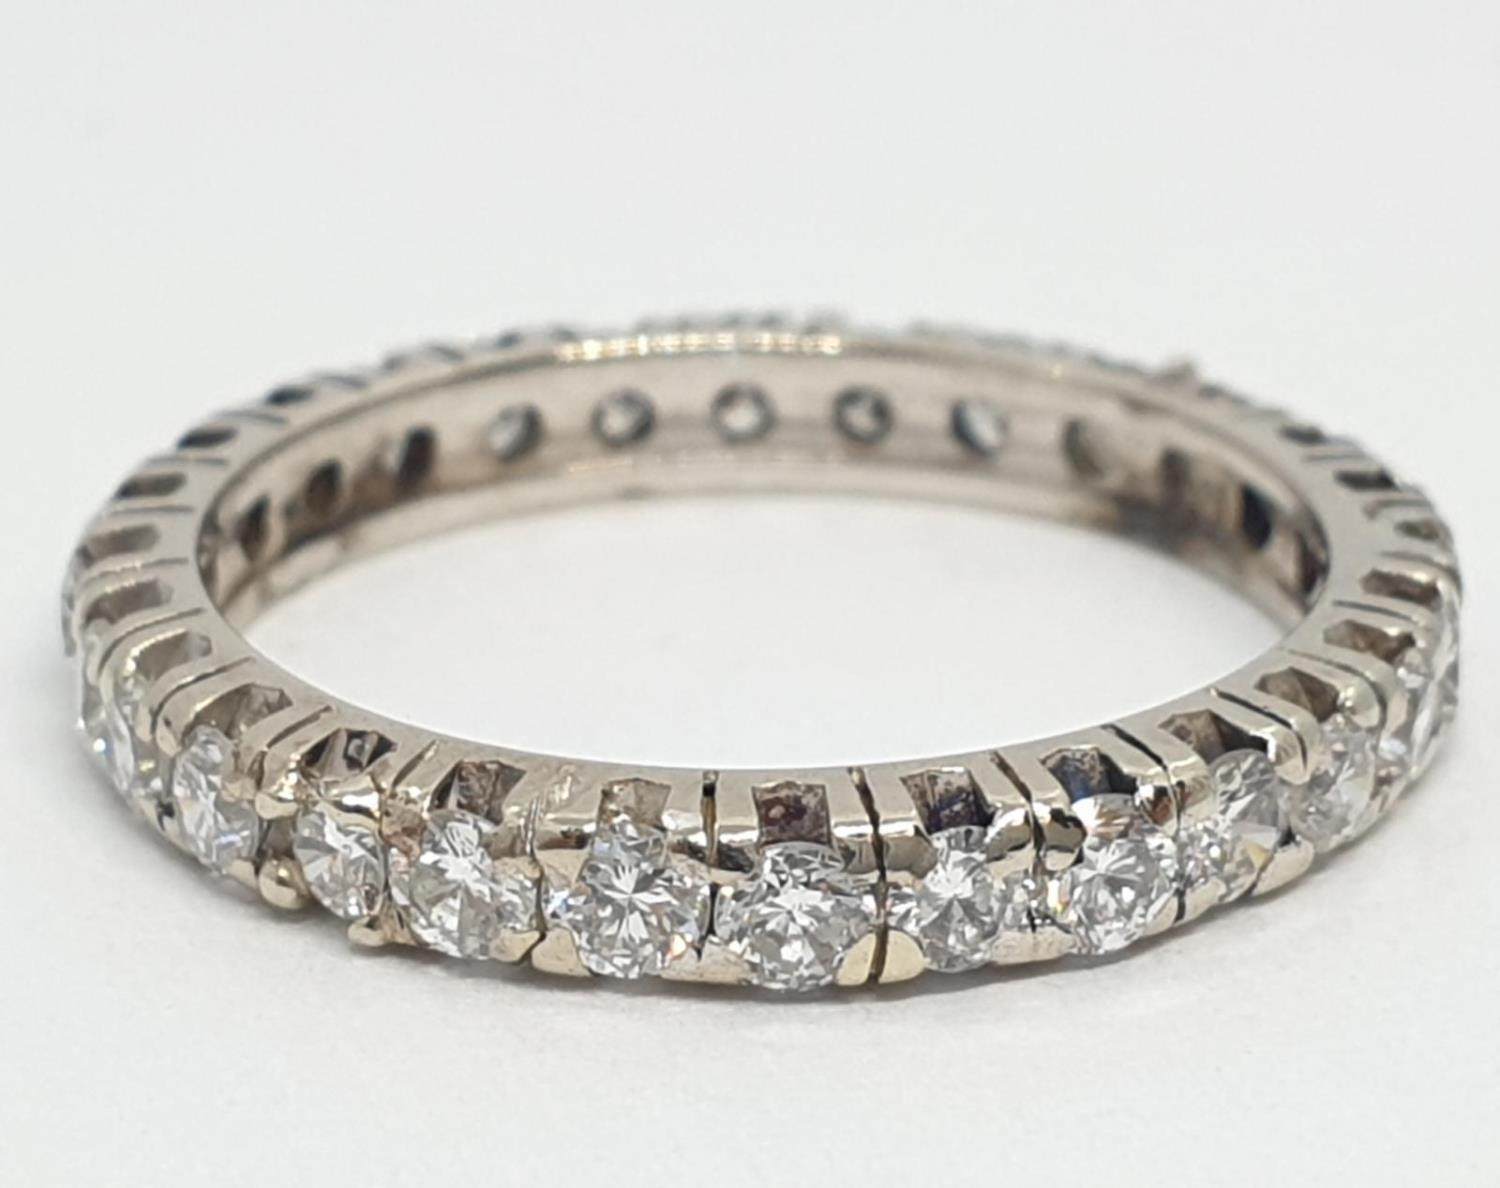 Diamond full eternity ring (tested 18ct gold), weight 2.27g and size J